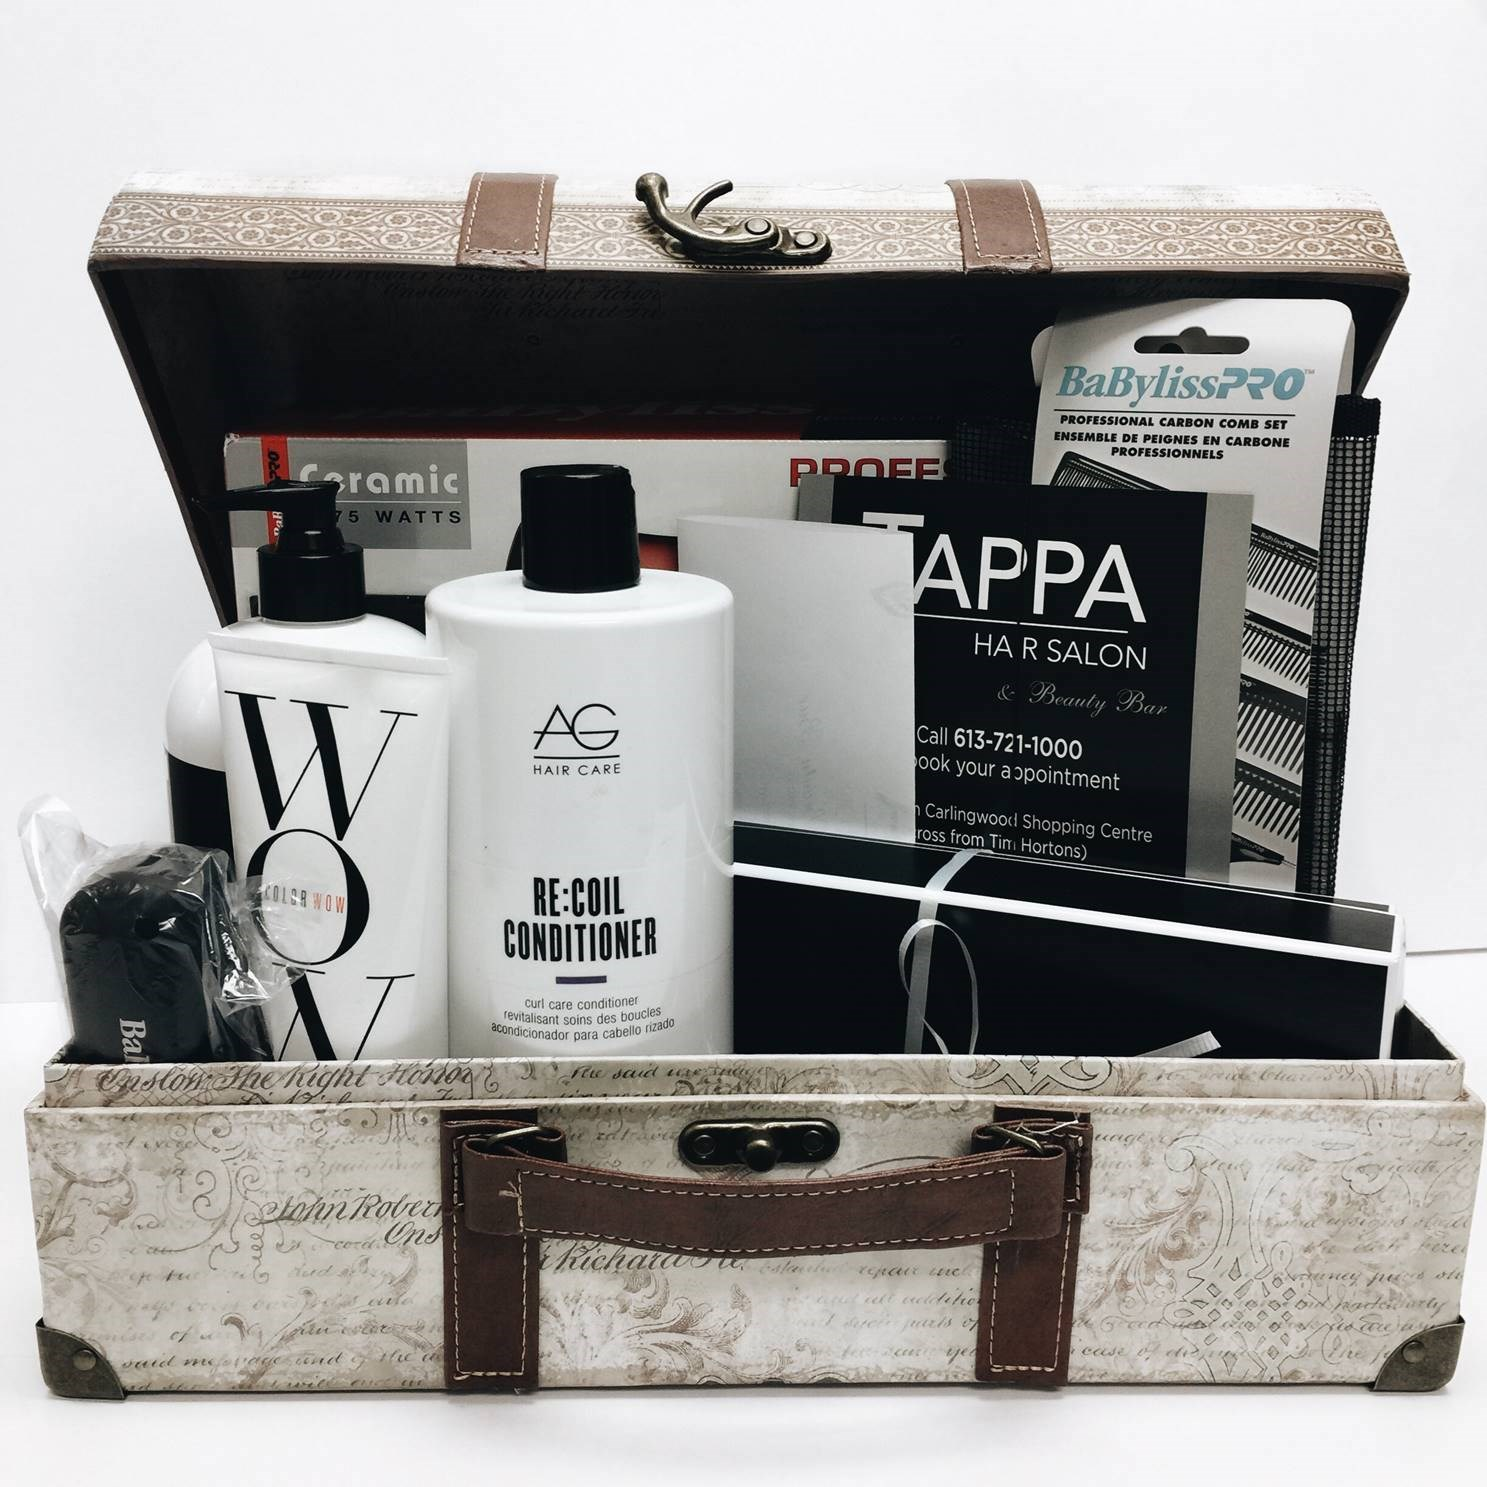 Black Friday Basket Give Away - And the winner is....